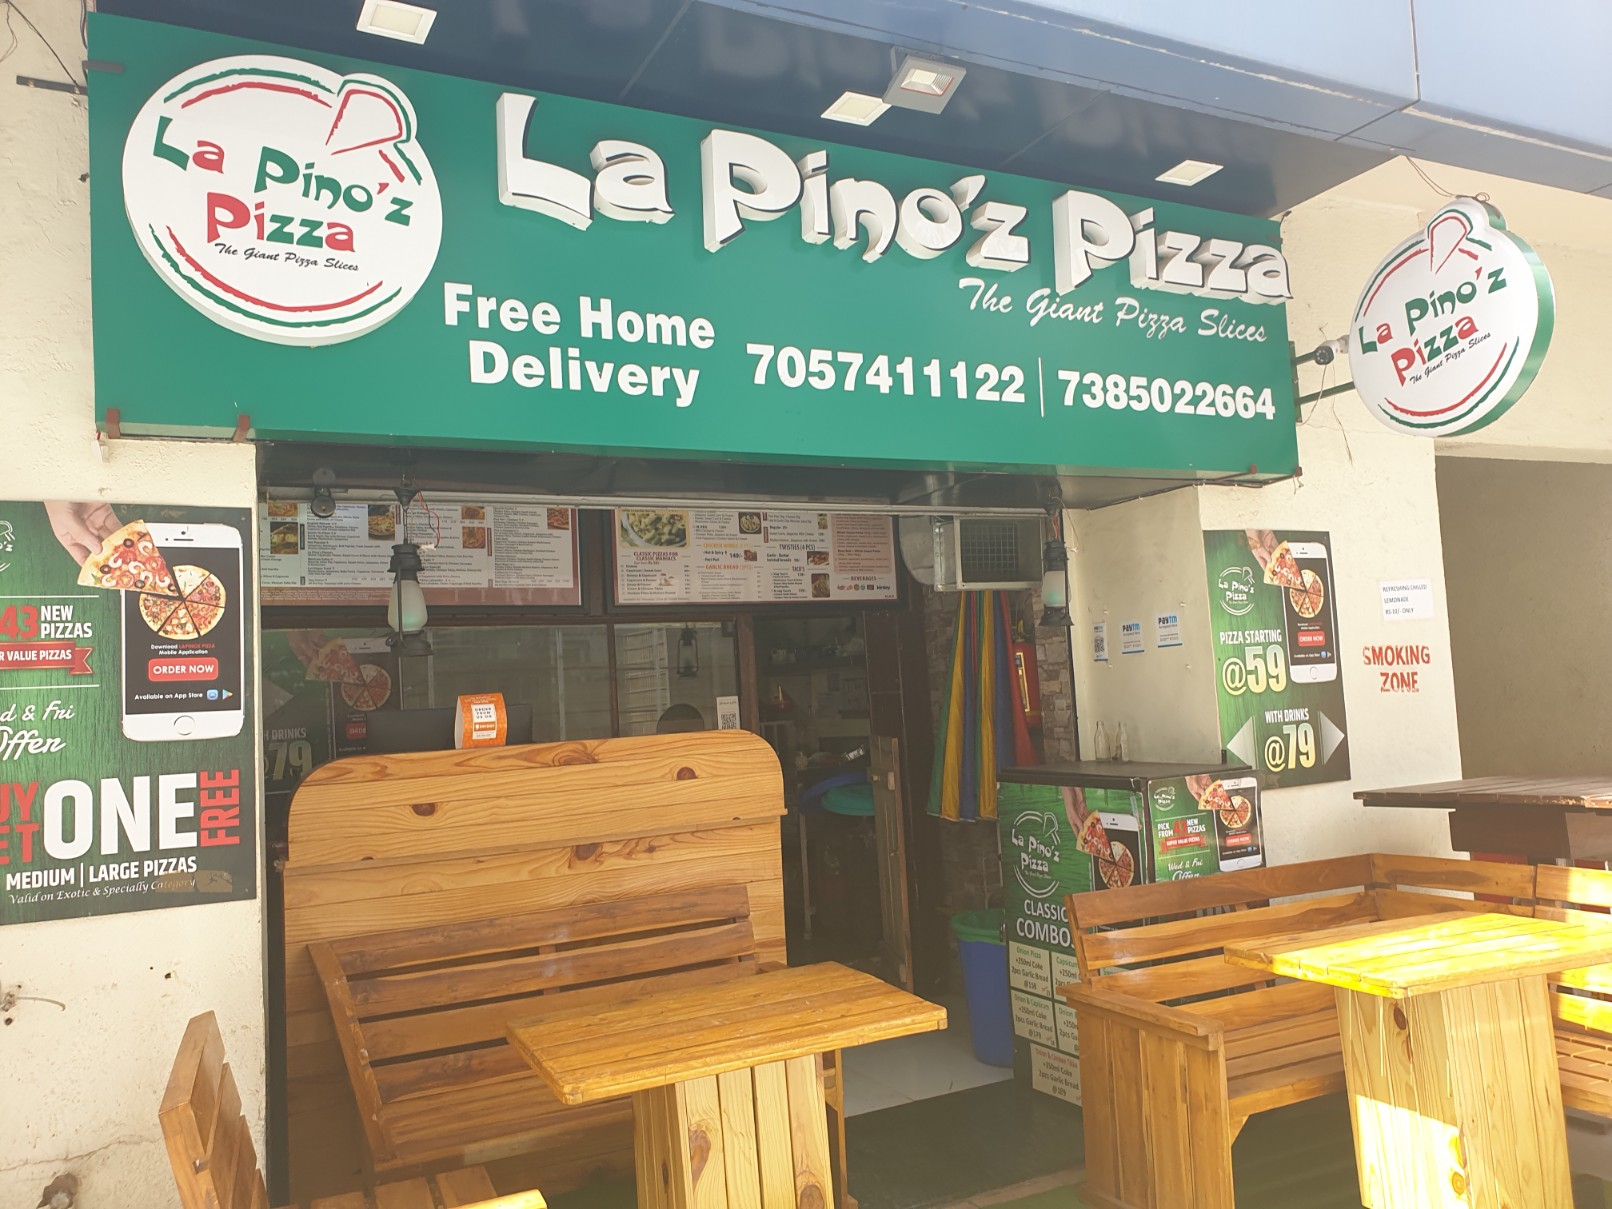 La pinoz Cafe in Magarpatta City Pune